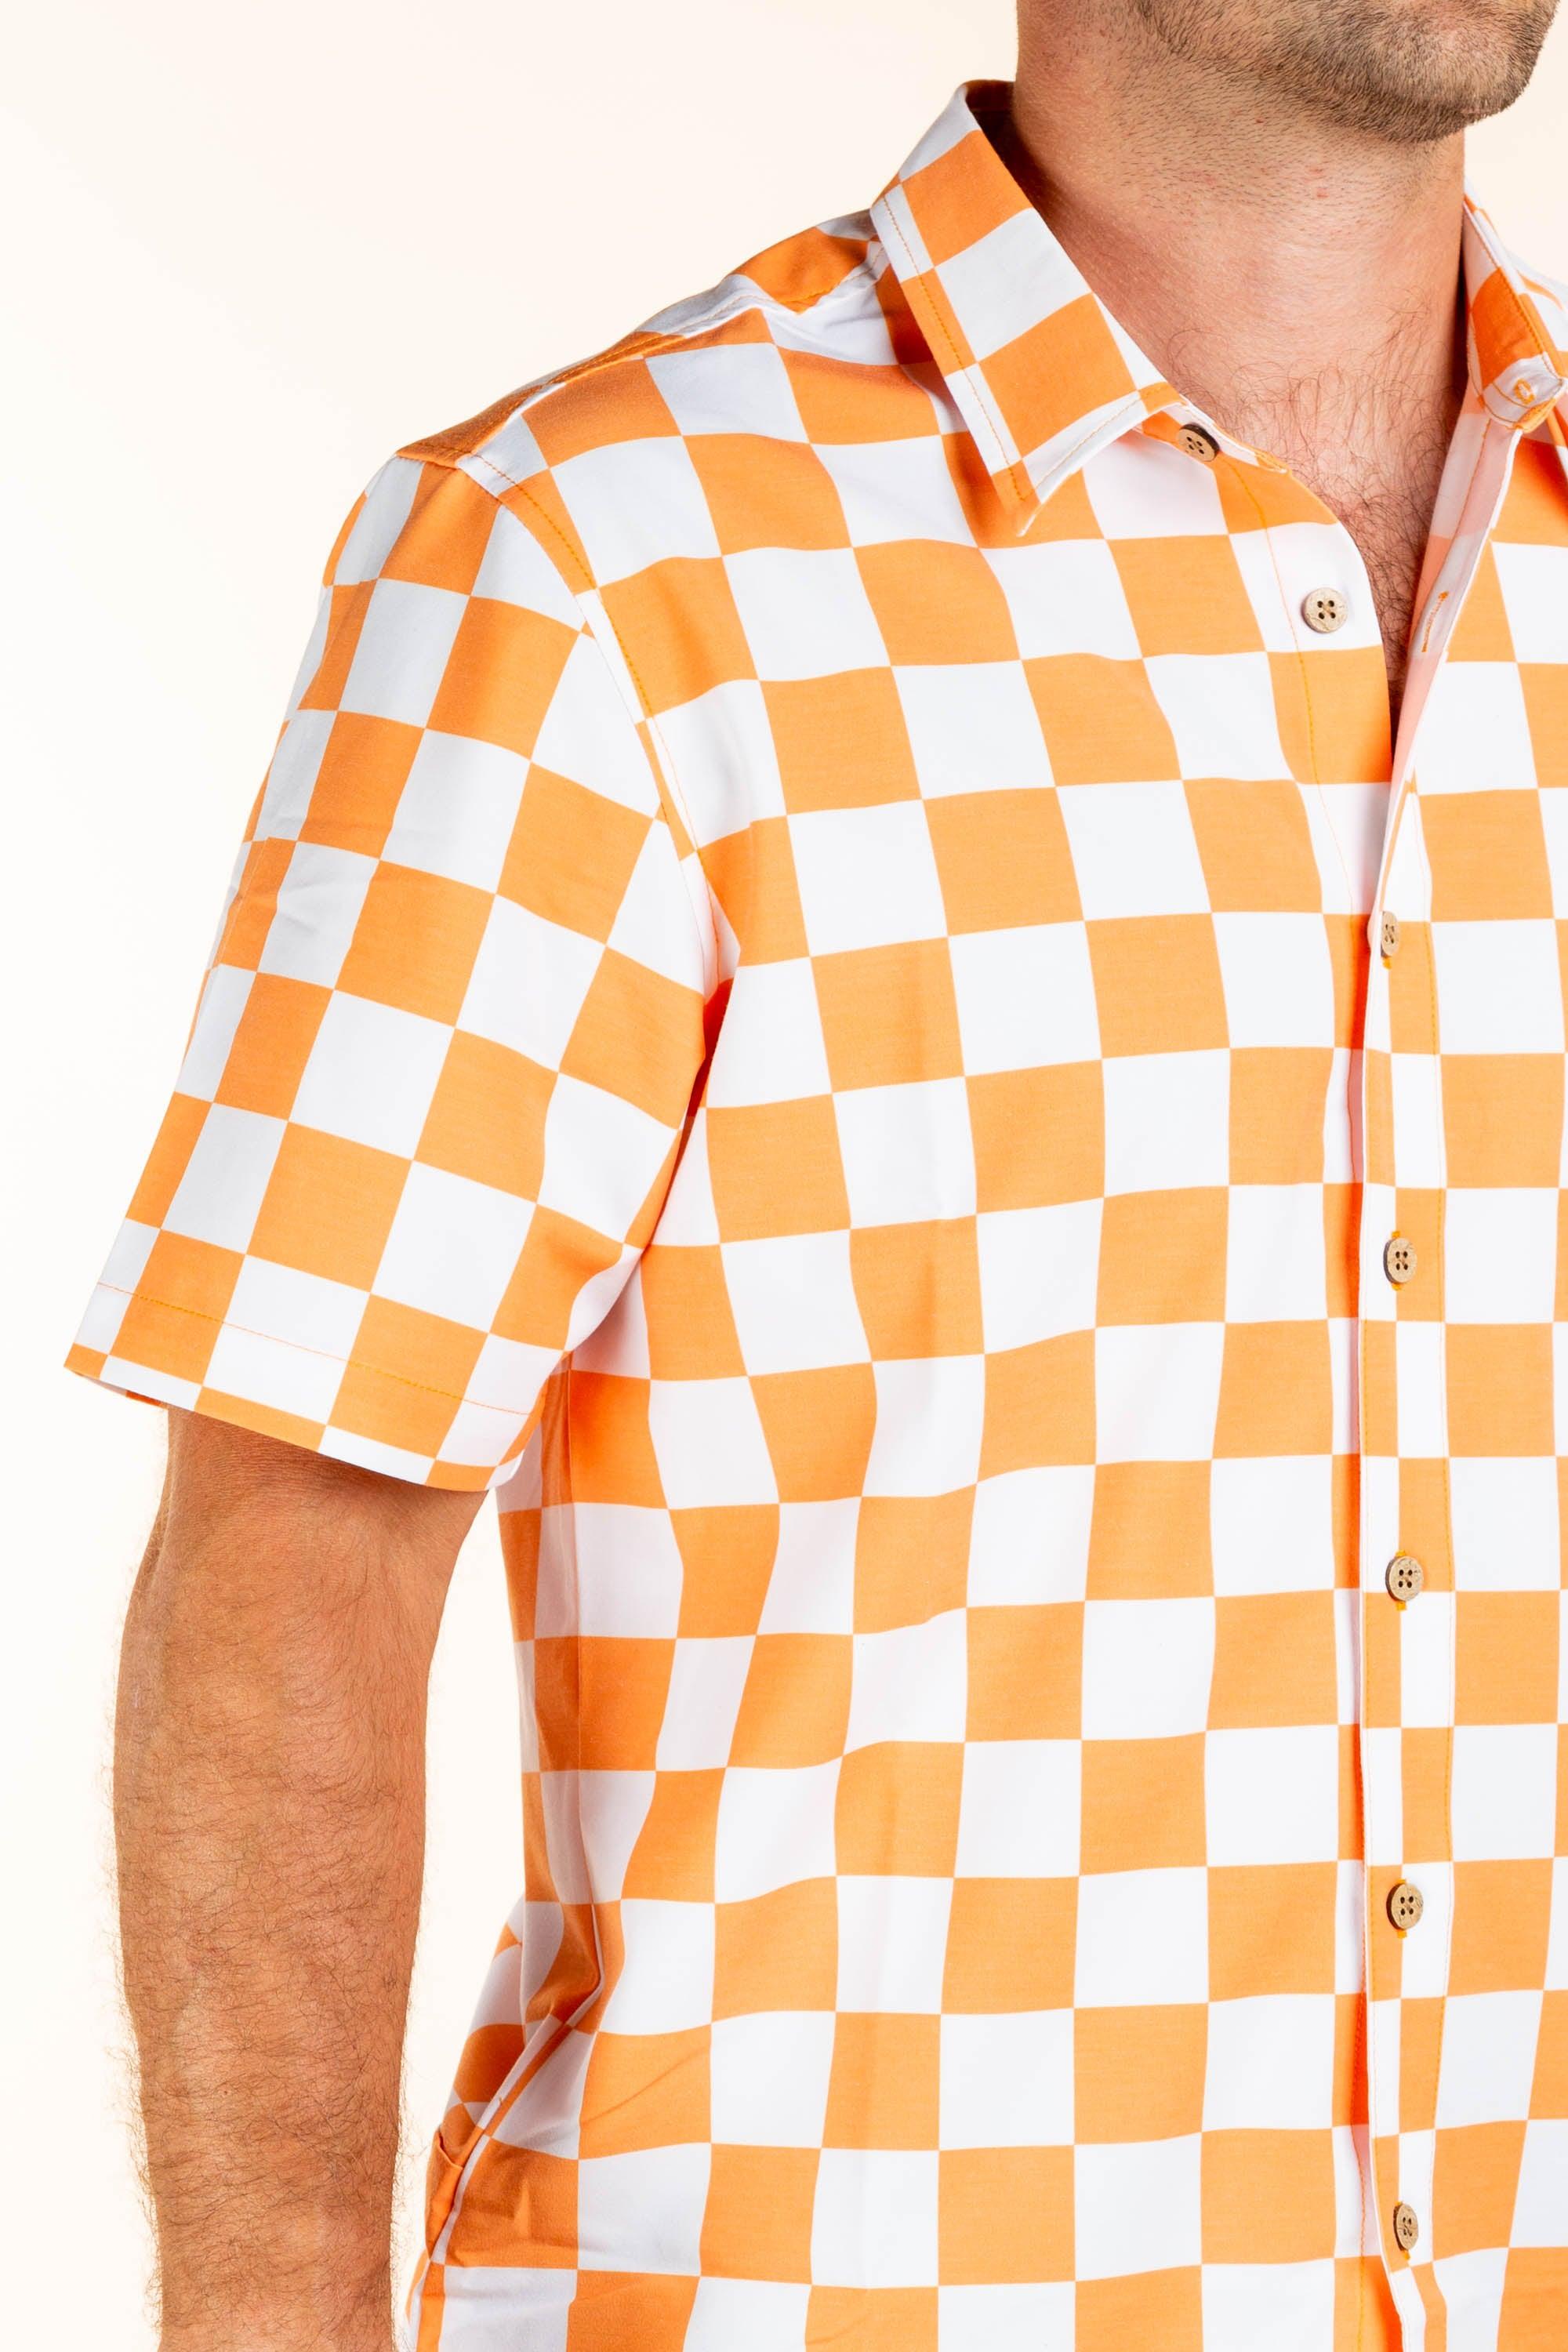 University of Tennessee Checker Print Tailgating Shirt